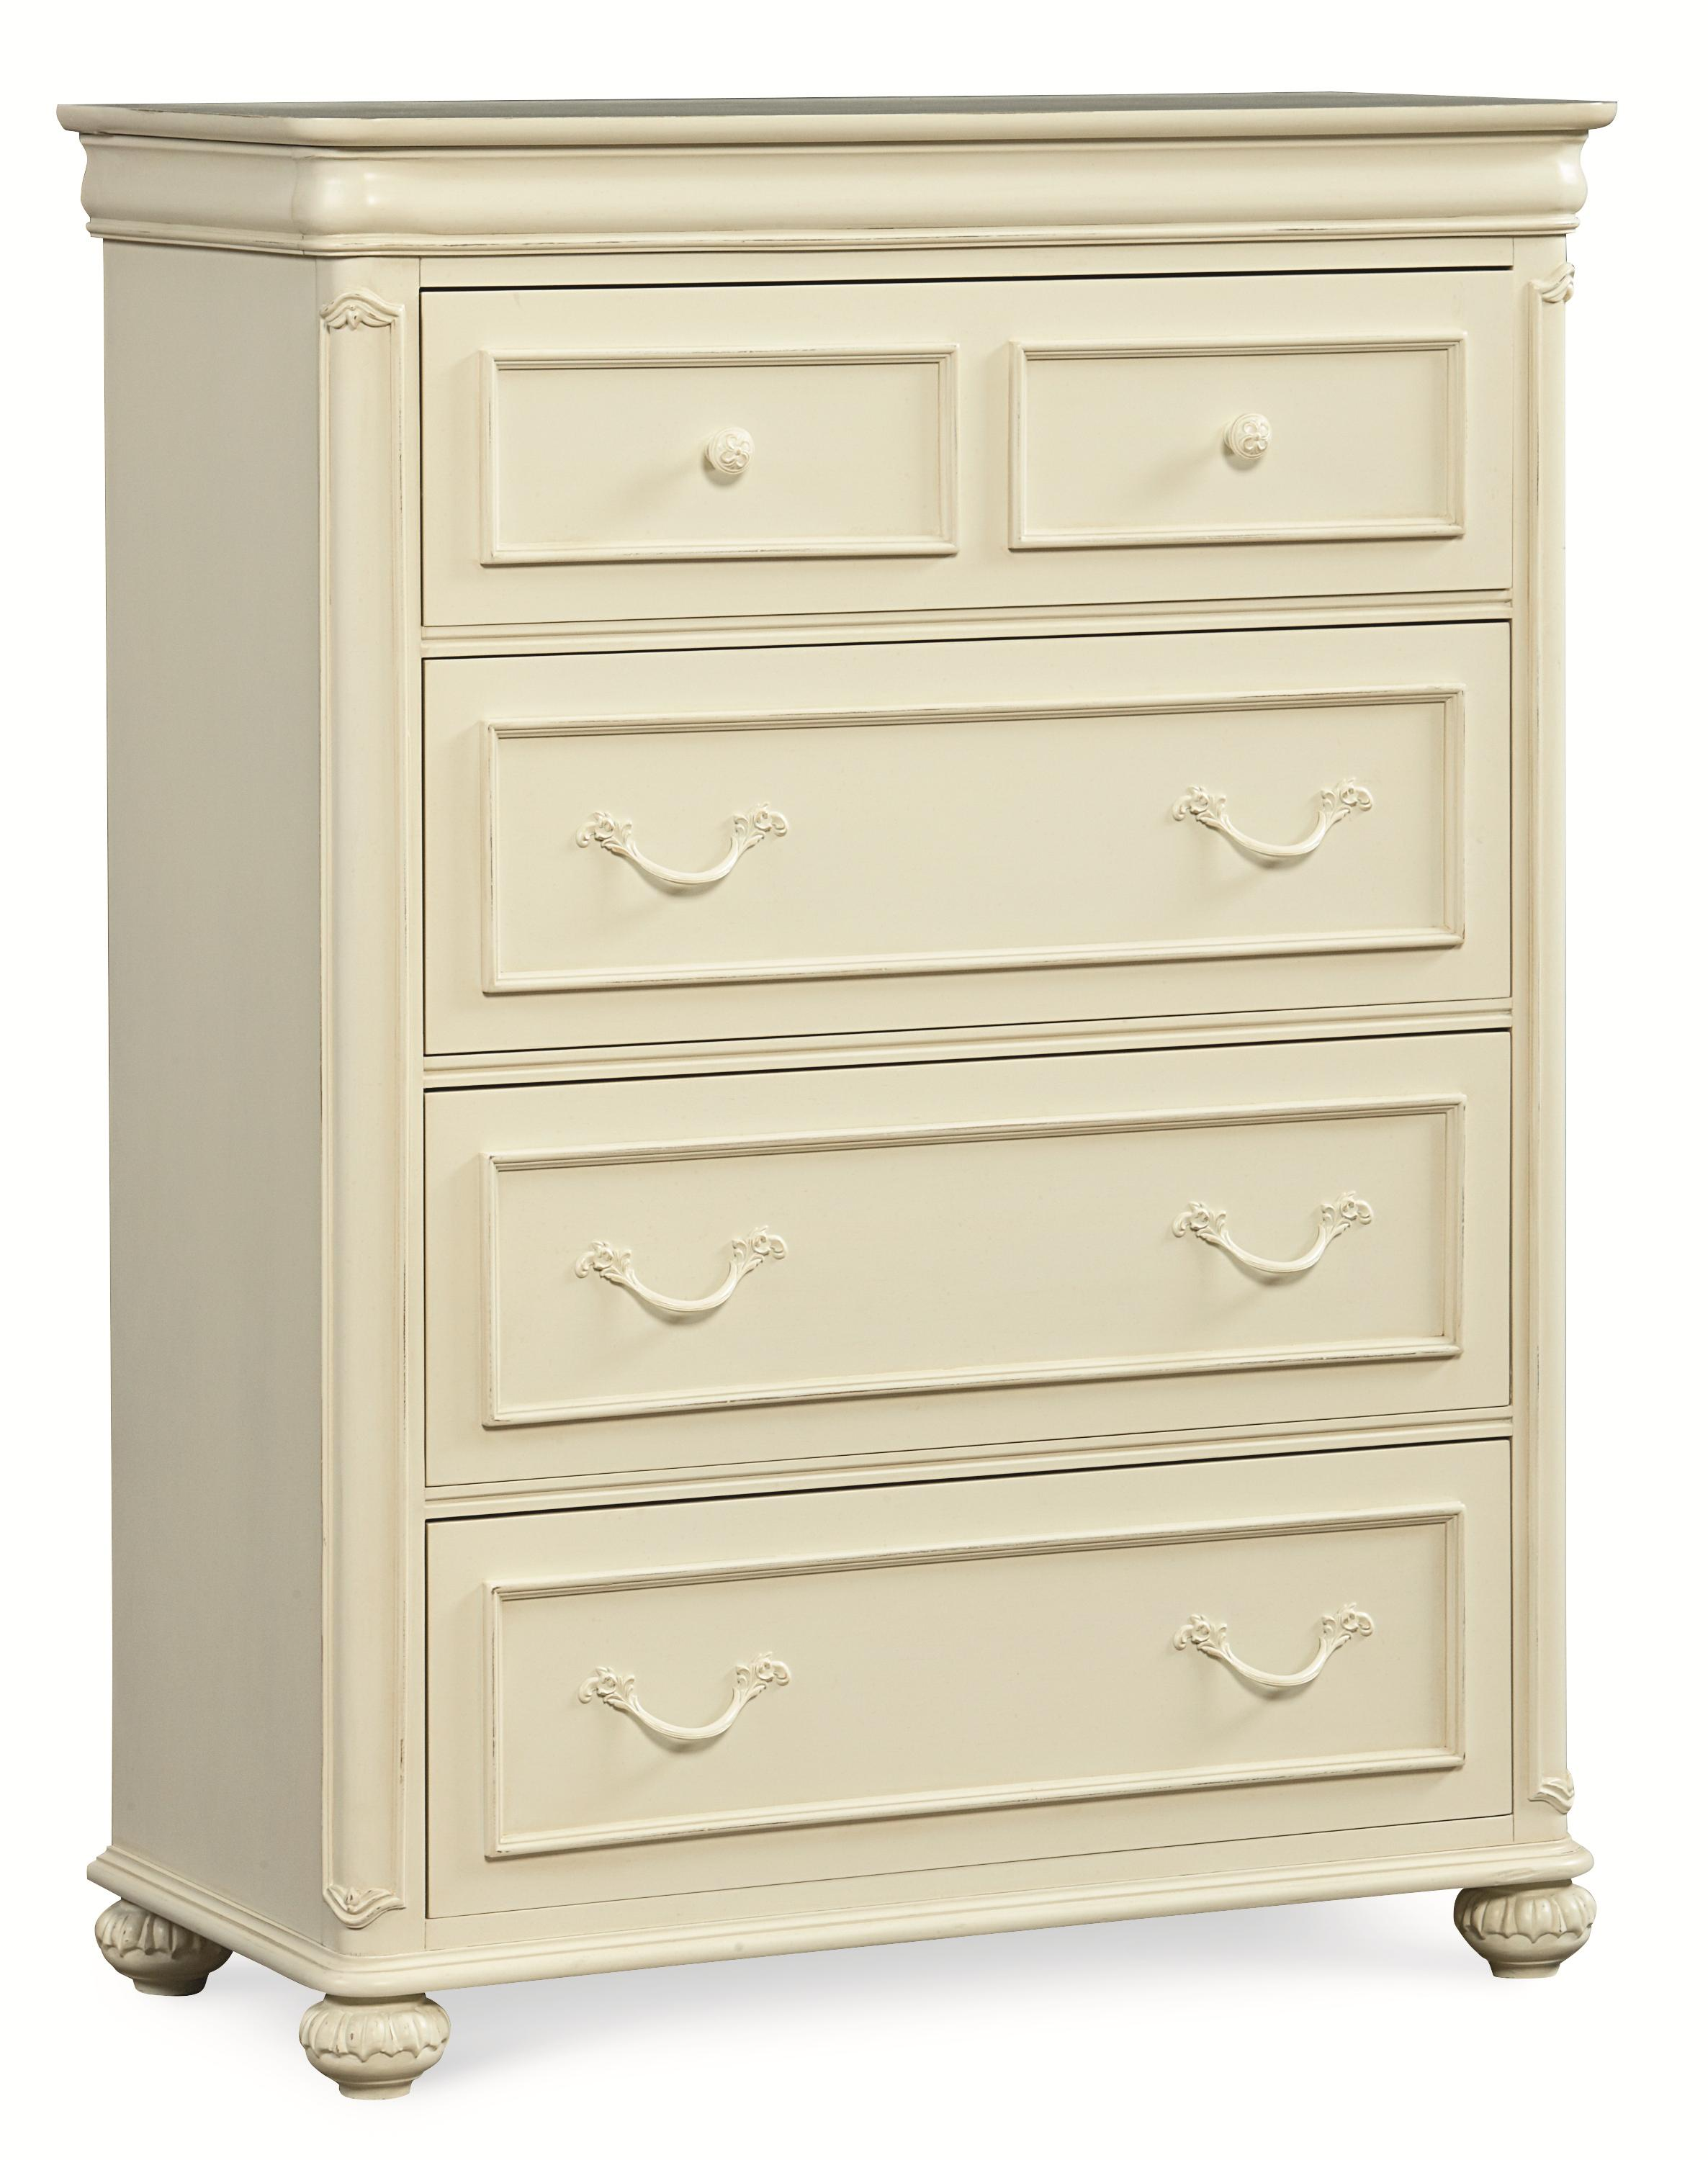 Legacy Classic Kids Charlotte Drawer Chest - Item Number: 3850-2200